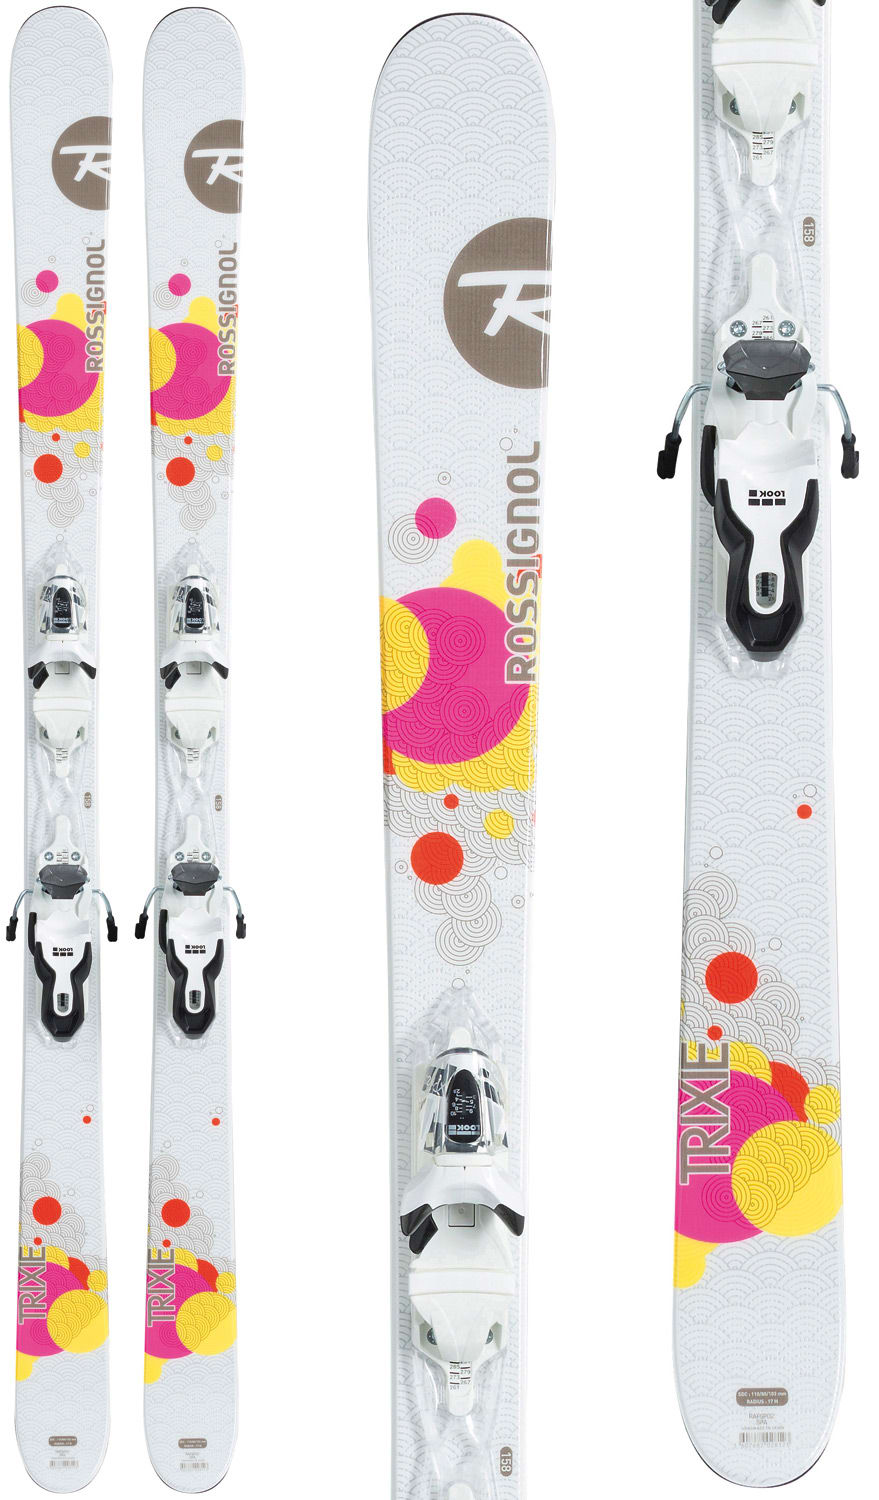 on sale rossignol trixie skis w xpress 10 bindings. Black Bedroom Furniture Sets. Home Design Ideas